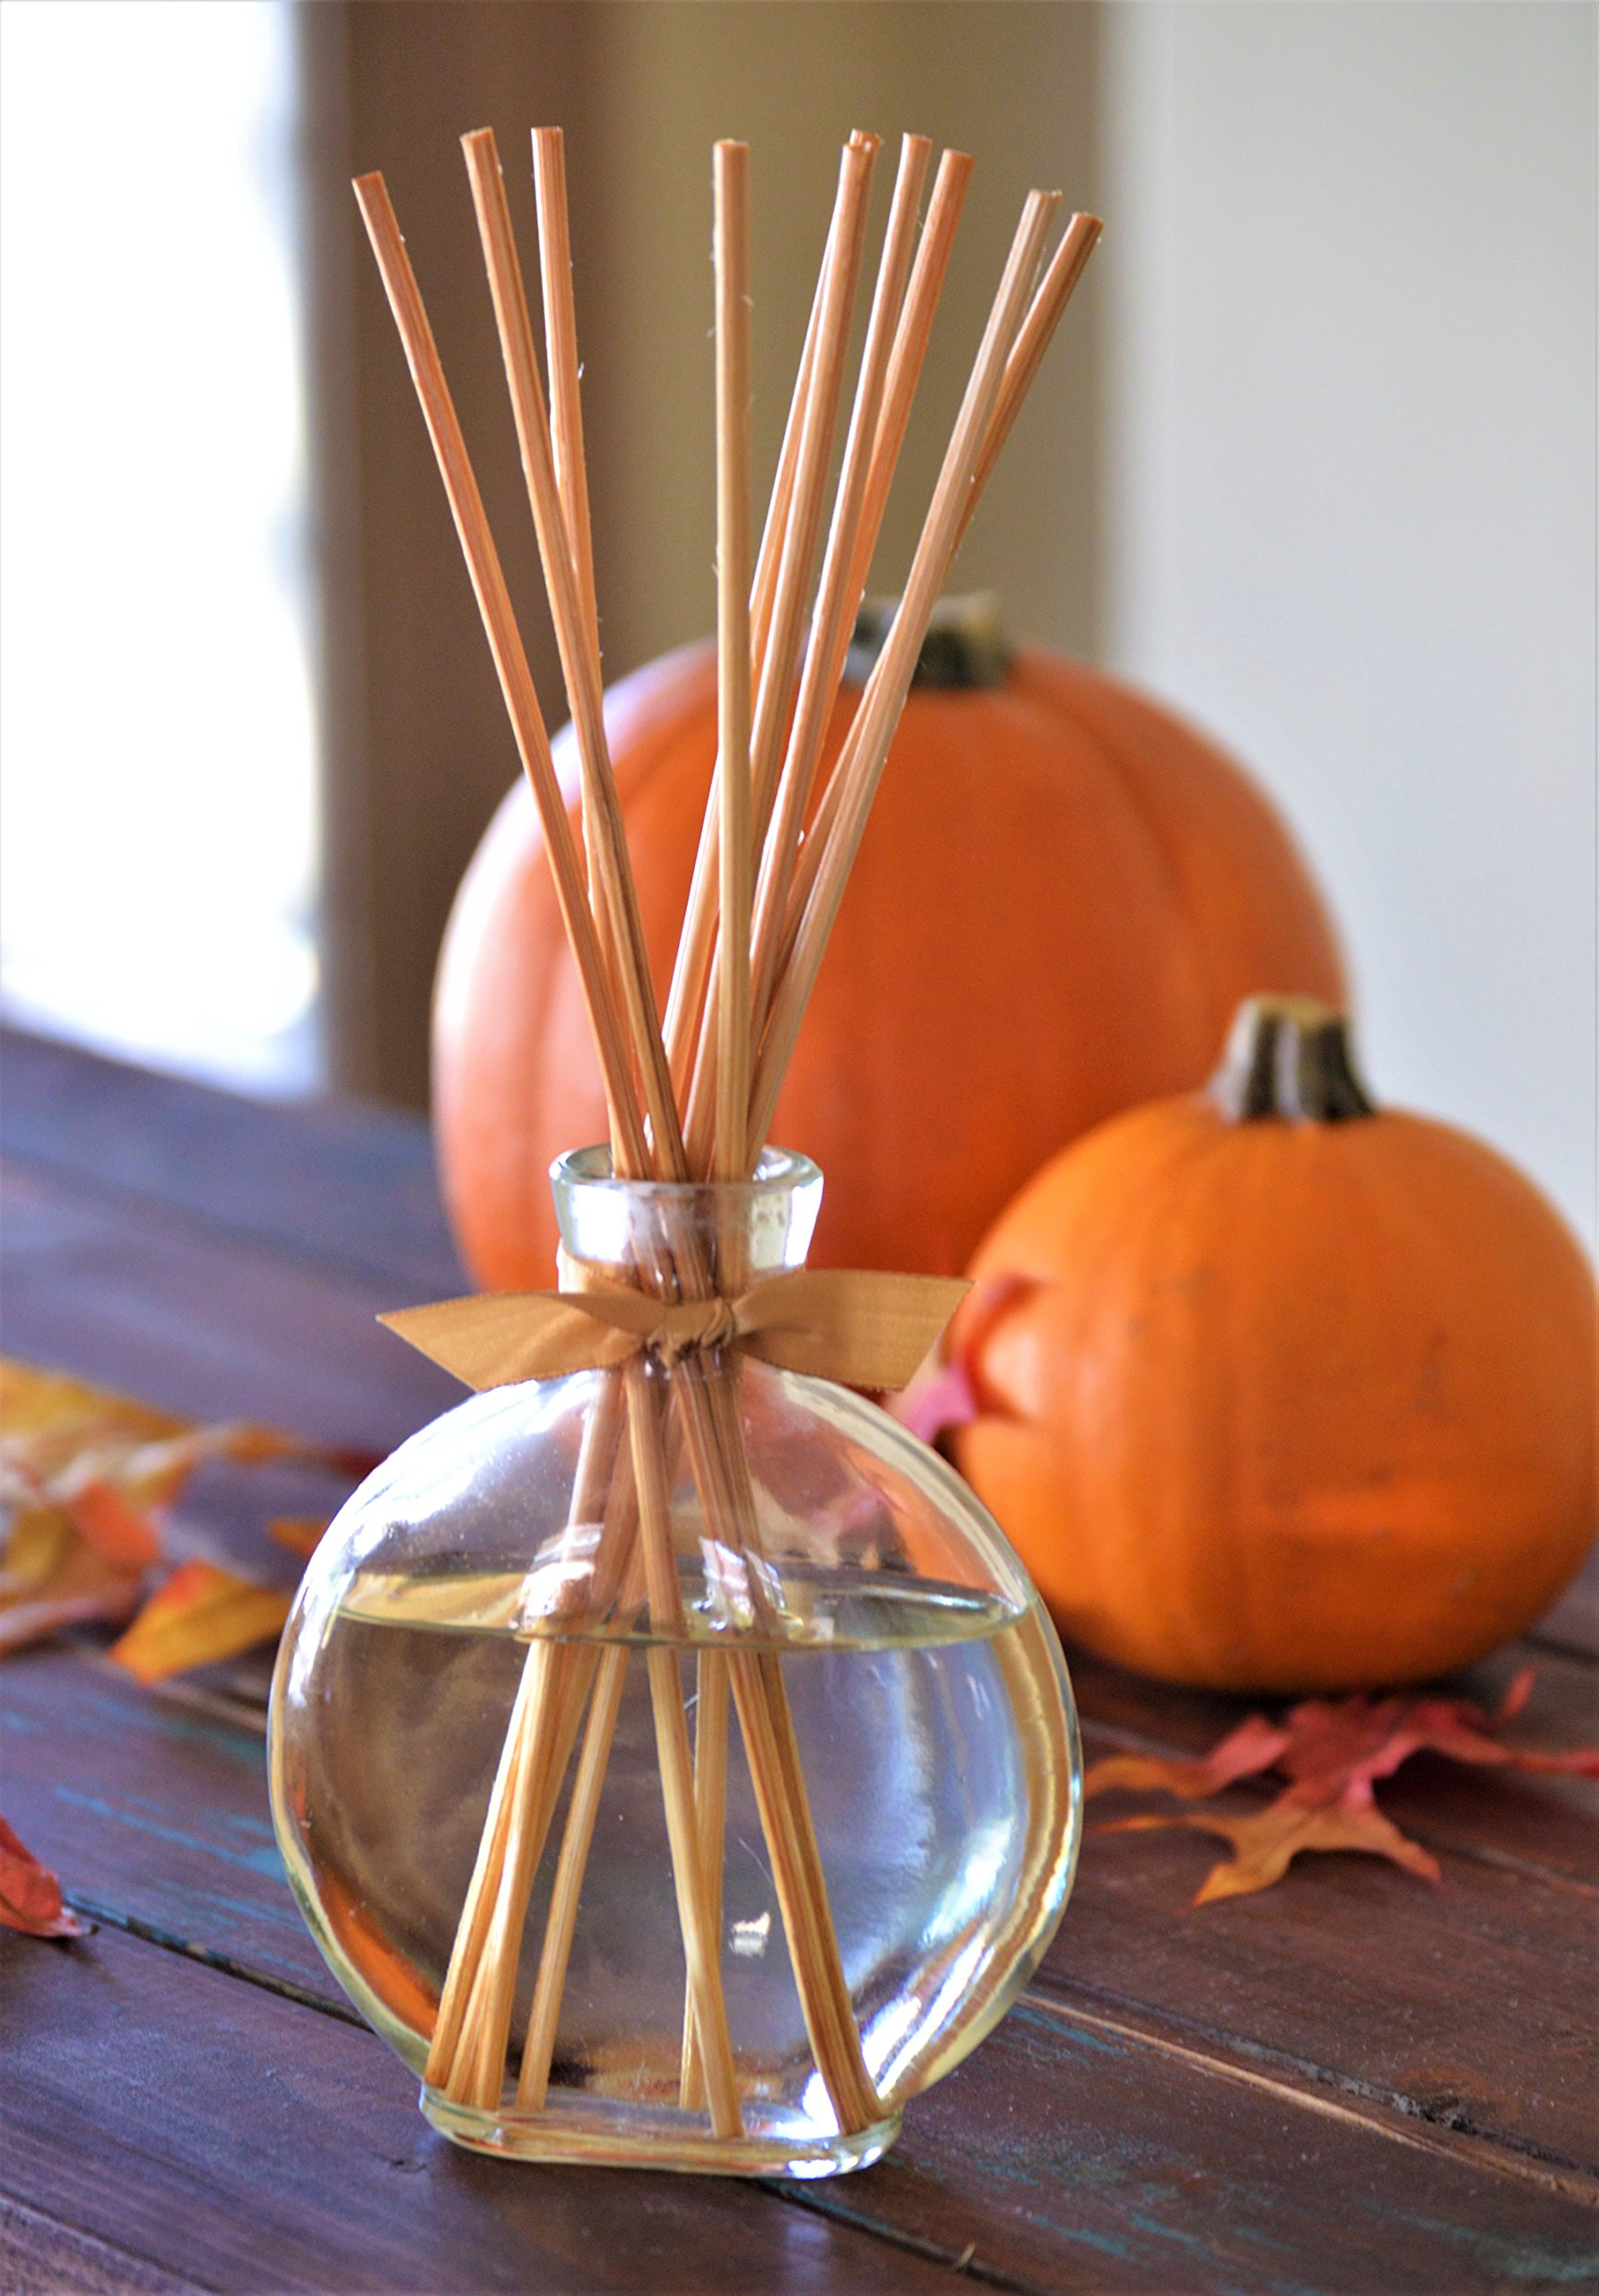 MINX Fragrances Sale! Harvest Pumpkin Spice Reed Diffuser Gift Set | Spicy Autumn Smell | Fresh Pumpkin Pie | Cinnamon Ginger and Nutmeg scent | Filled in Beautiful Autumn Holiday bottle.